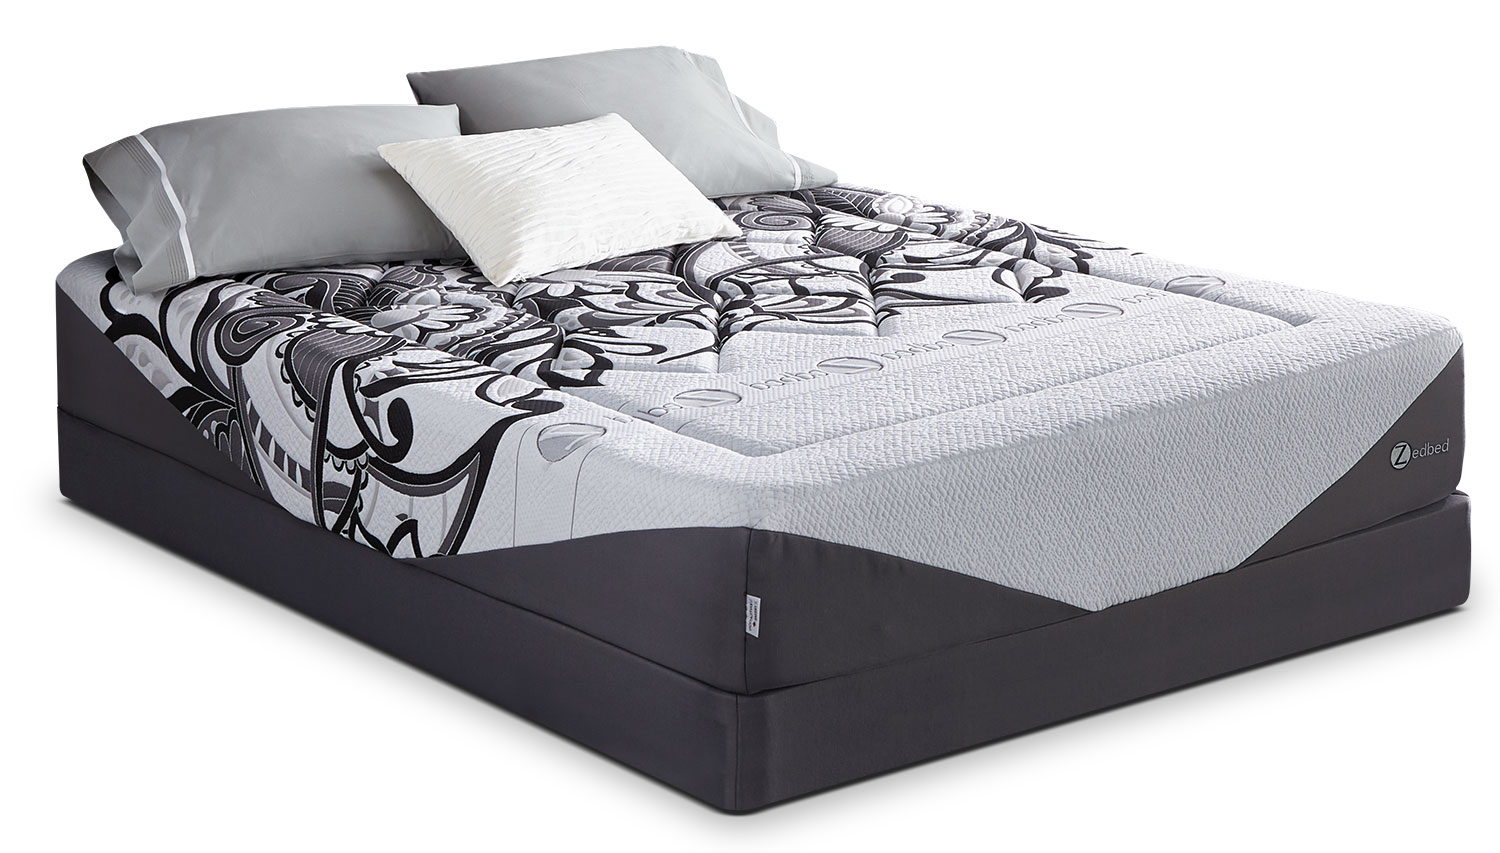 Mattresses and Bedding - Zedbed Vertuo Ultra Tight-Top King Mattress Set